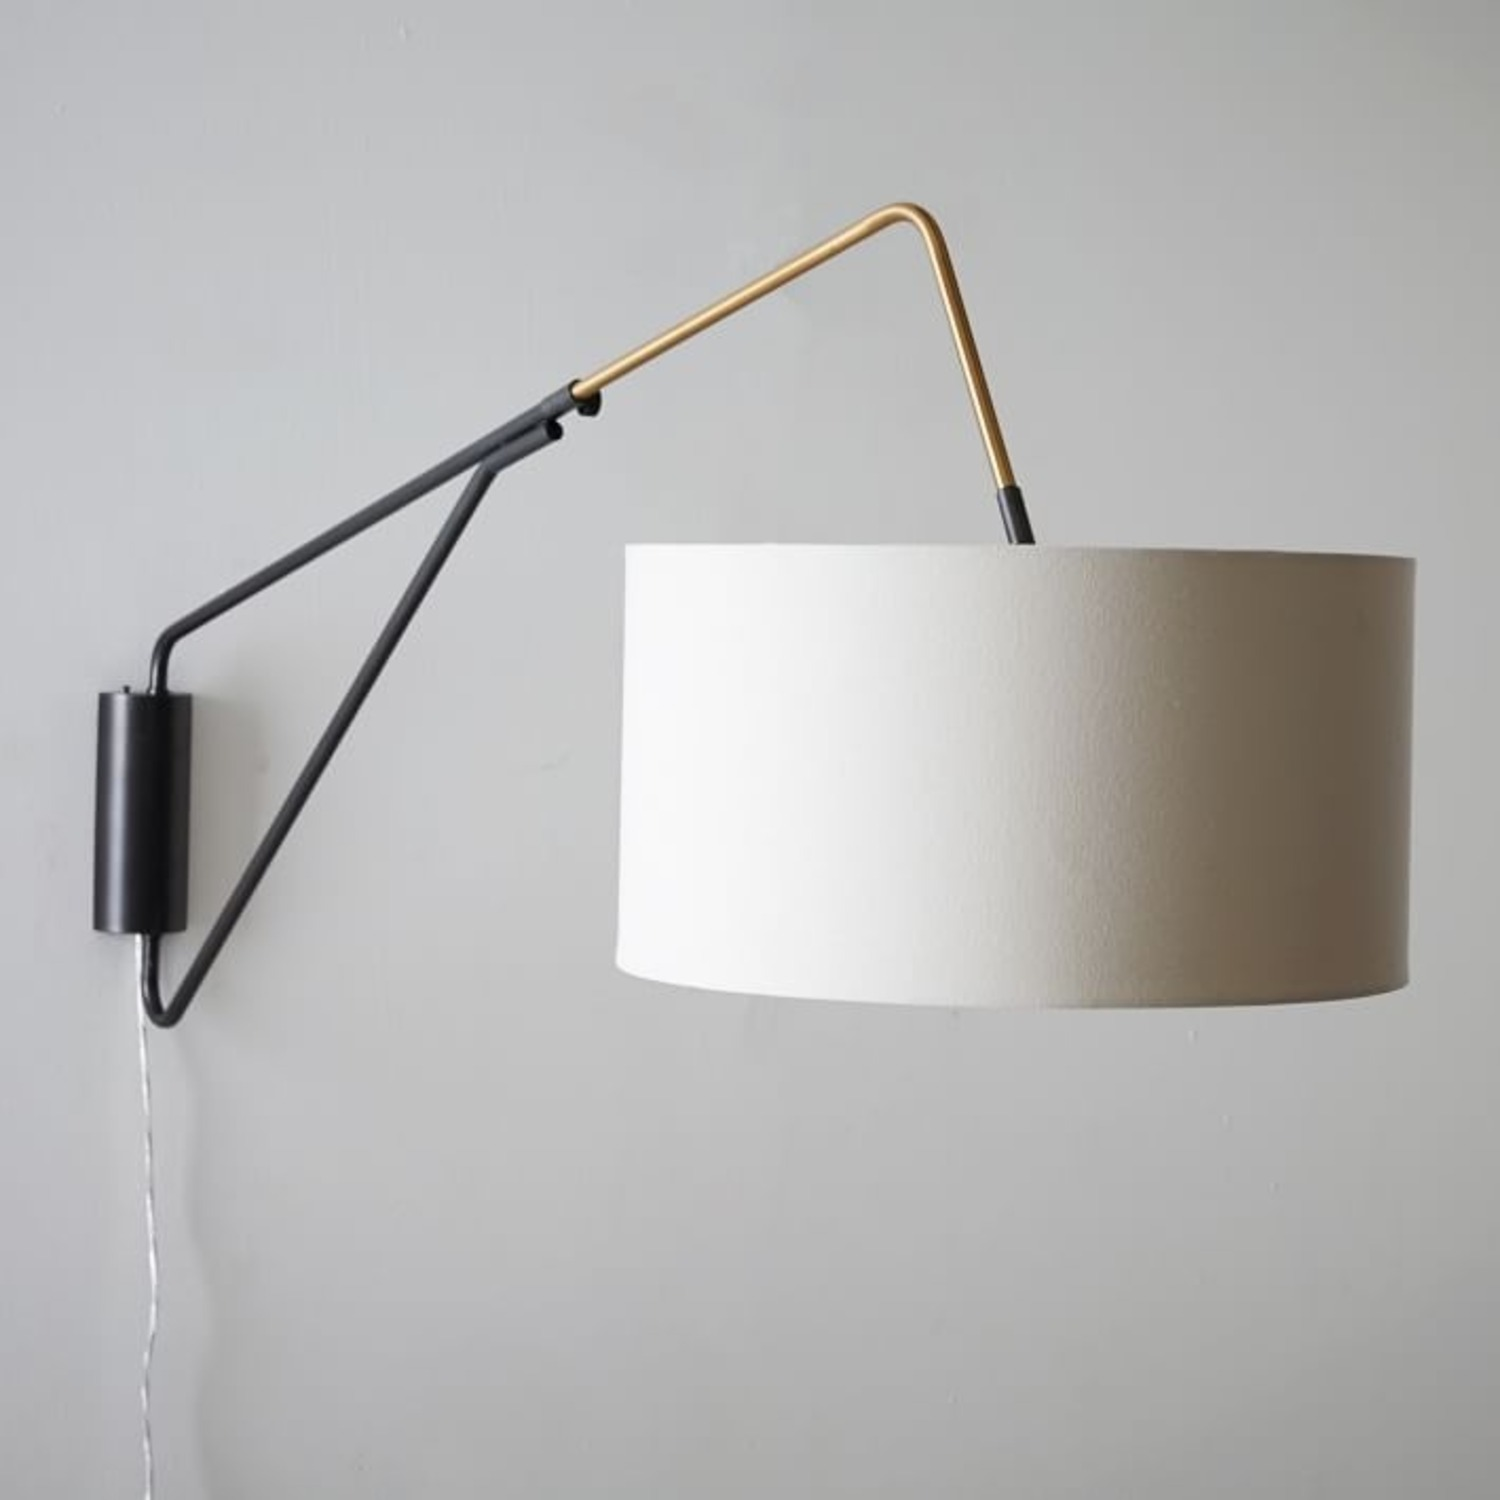 West Elm Mid-Century Overarching Wall Sconce - image-1